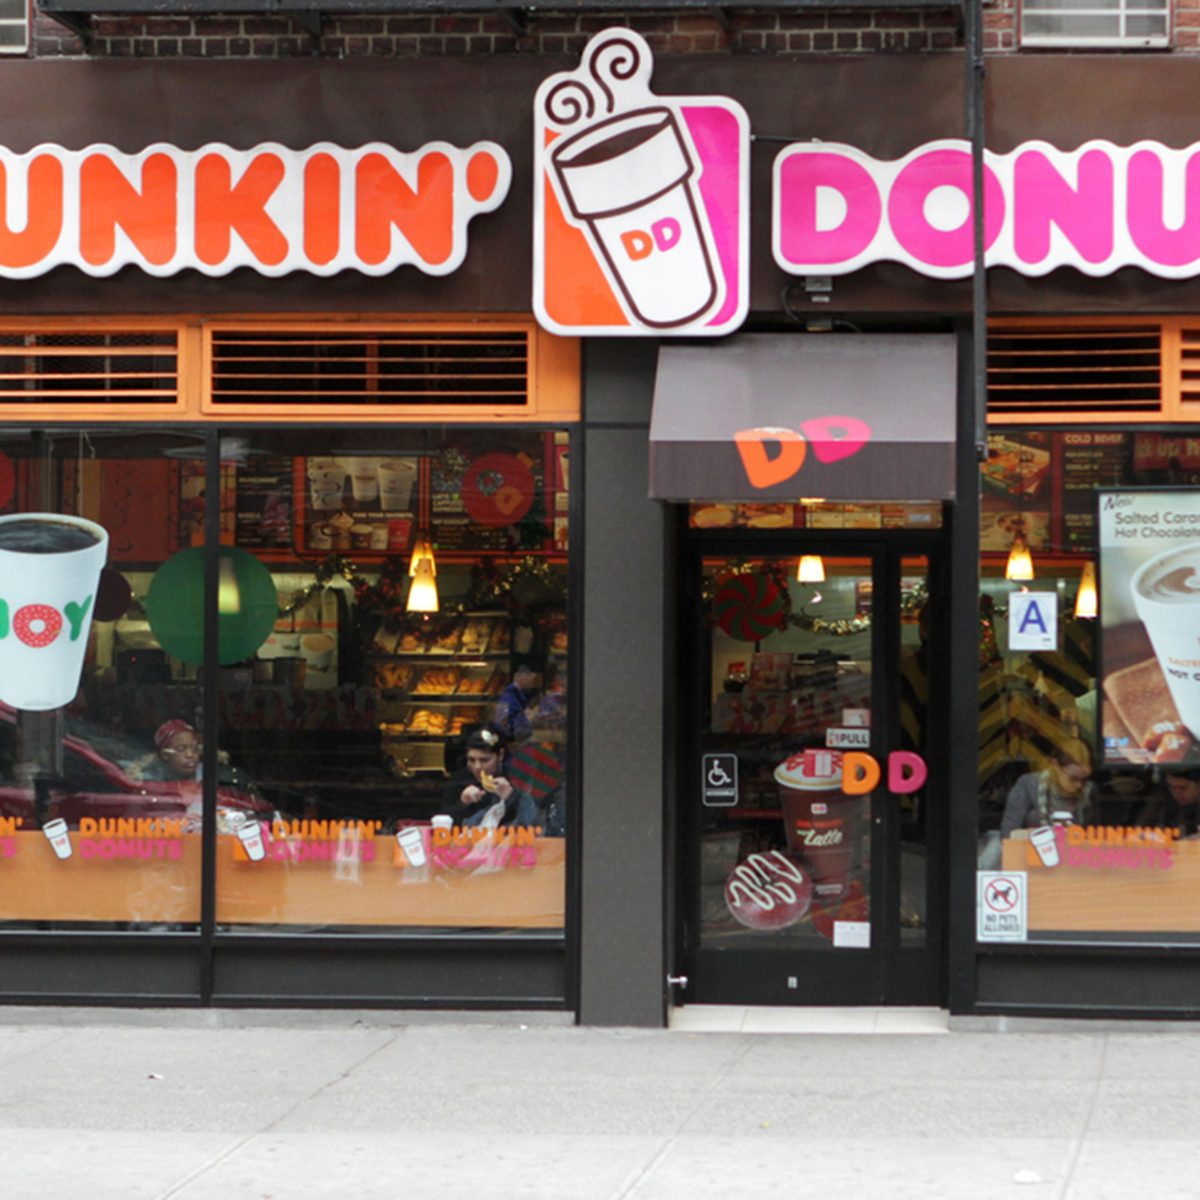 An exterior view of a Dunkin Donuts coffee shop in New York City